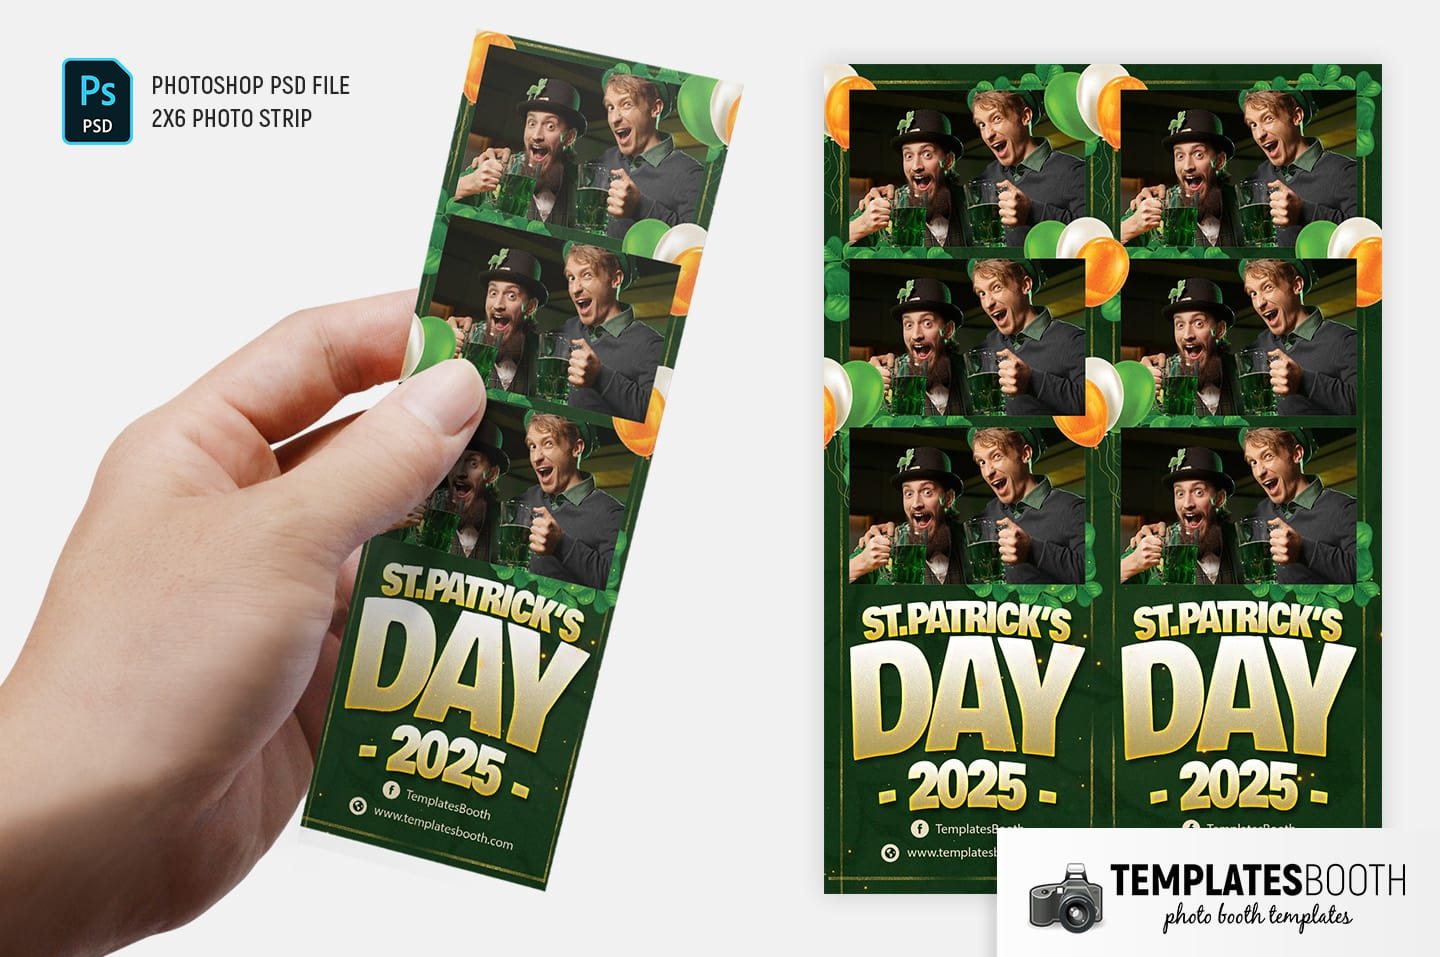 St. Patrick's Day Photo Booth Template (2x6 photo strip)